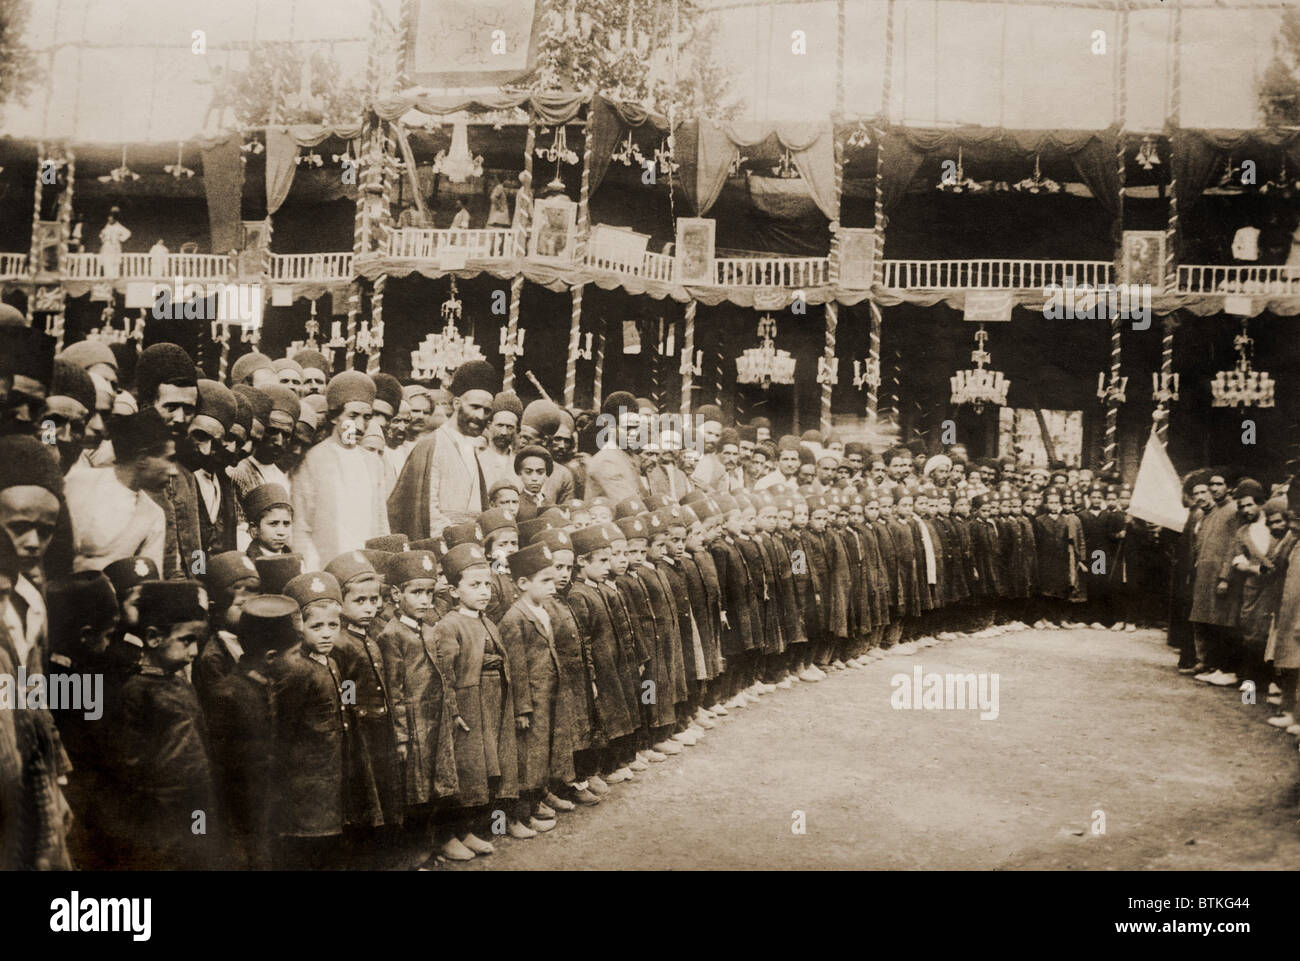 Anti-royalist demonstration of uniformed students and adults in Tabriz, Persia. From 1907-1911 Persia underwent - Stock Image